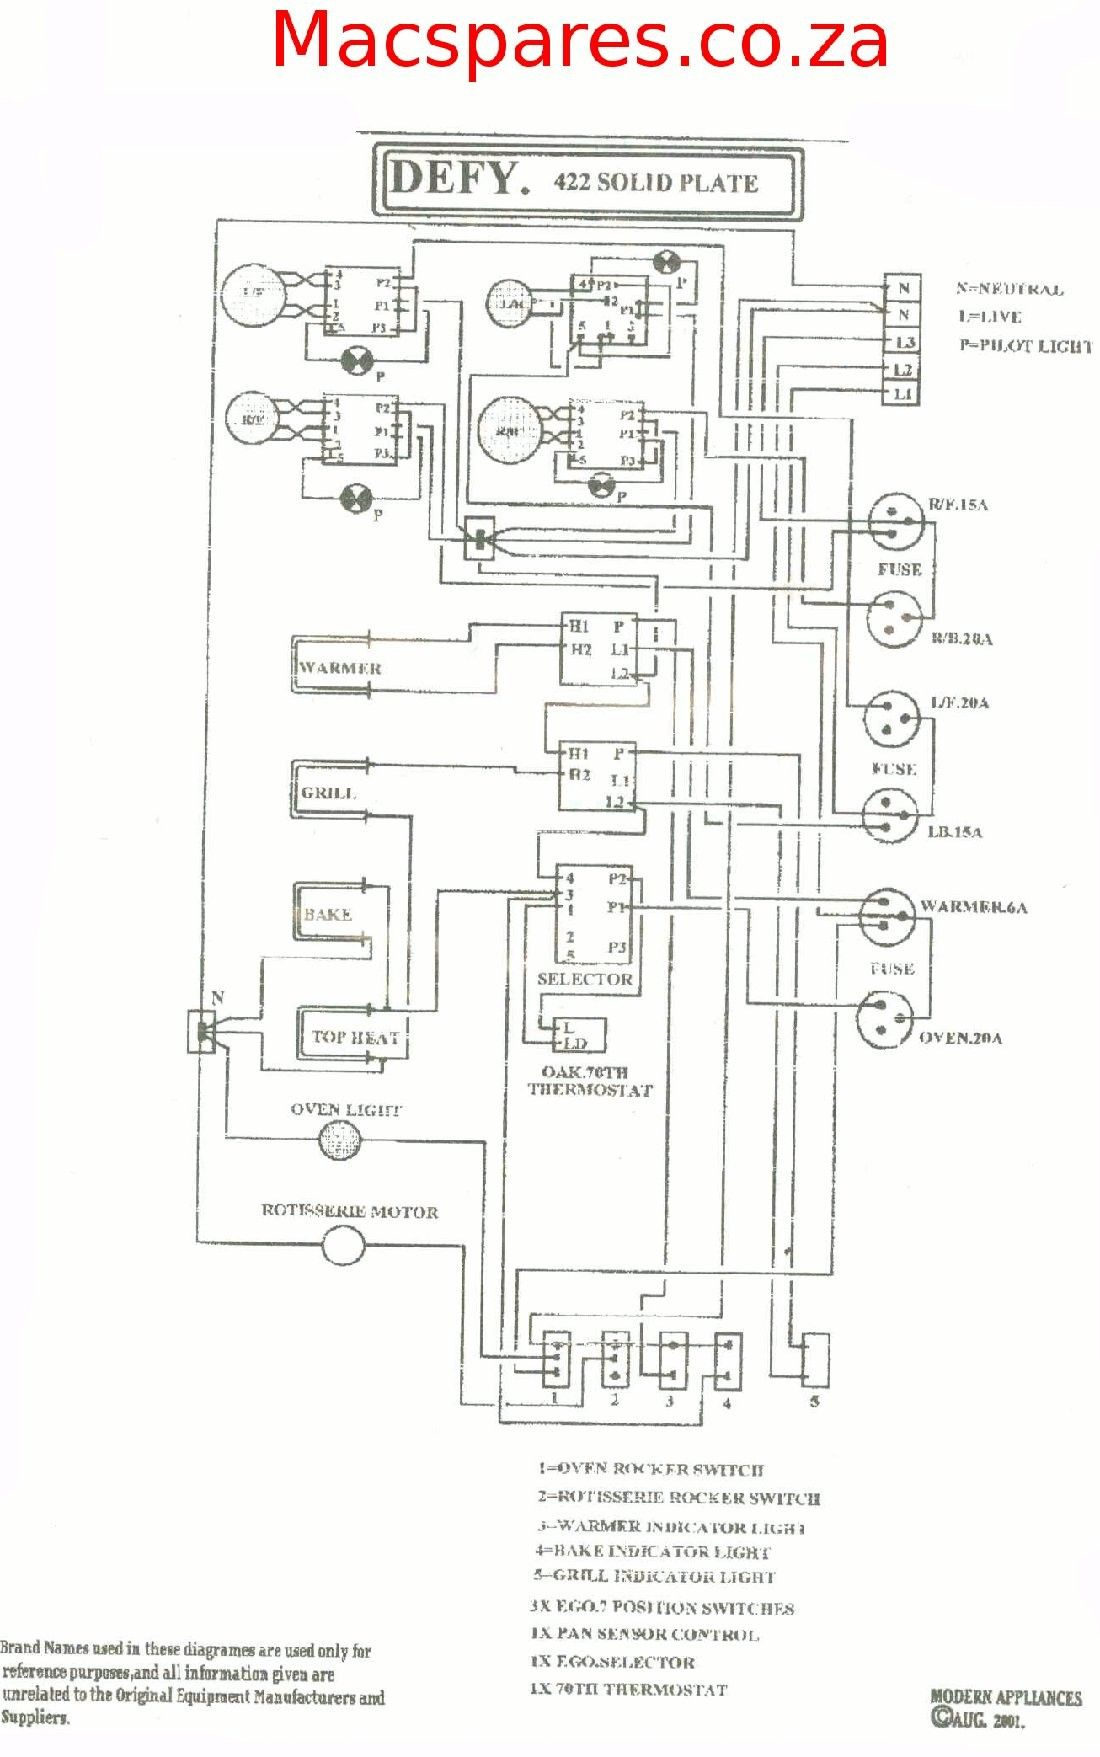 Unique Wiring Diagram For Electric Stove Outlet Diagram Diagramsample Diagramtemplate Wiringdiagram Diagramc Electric Range Electric Dryers Electric Stove